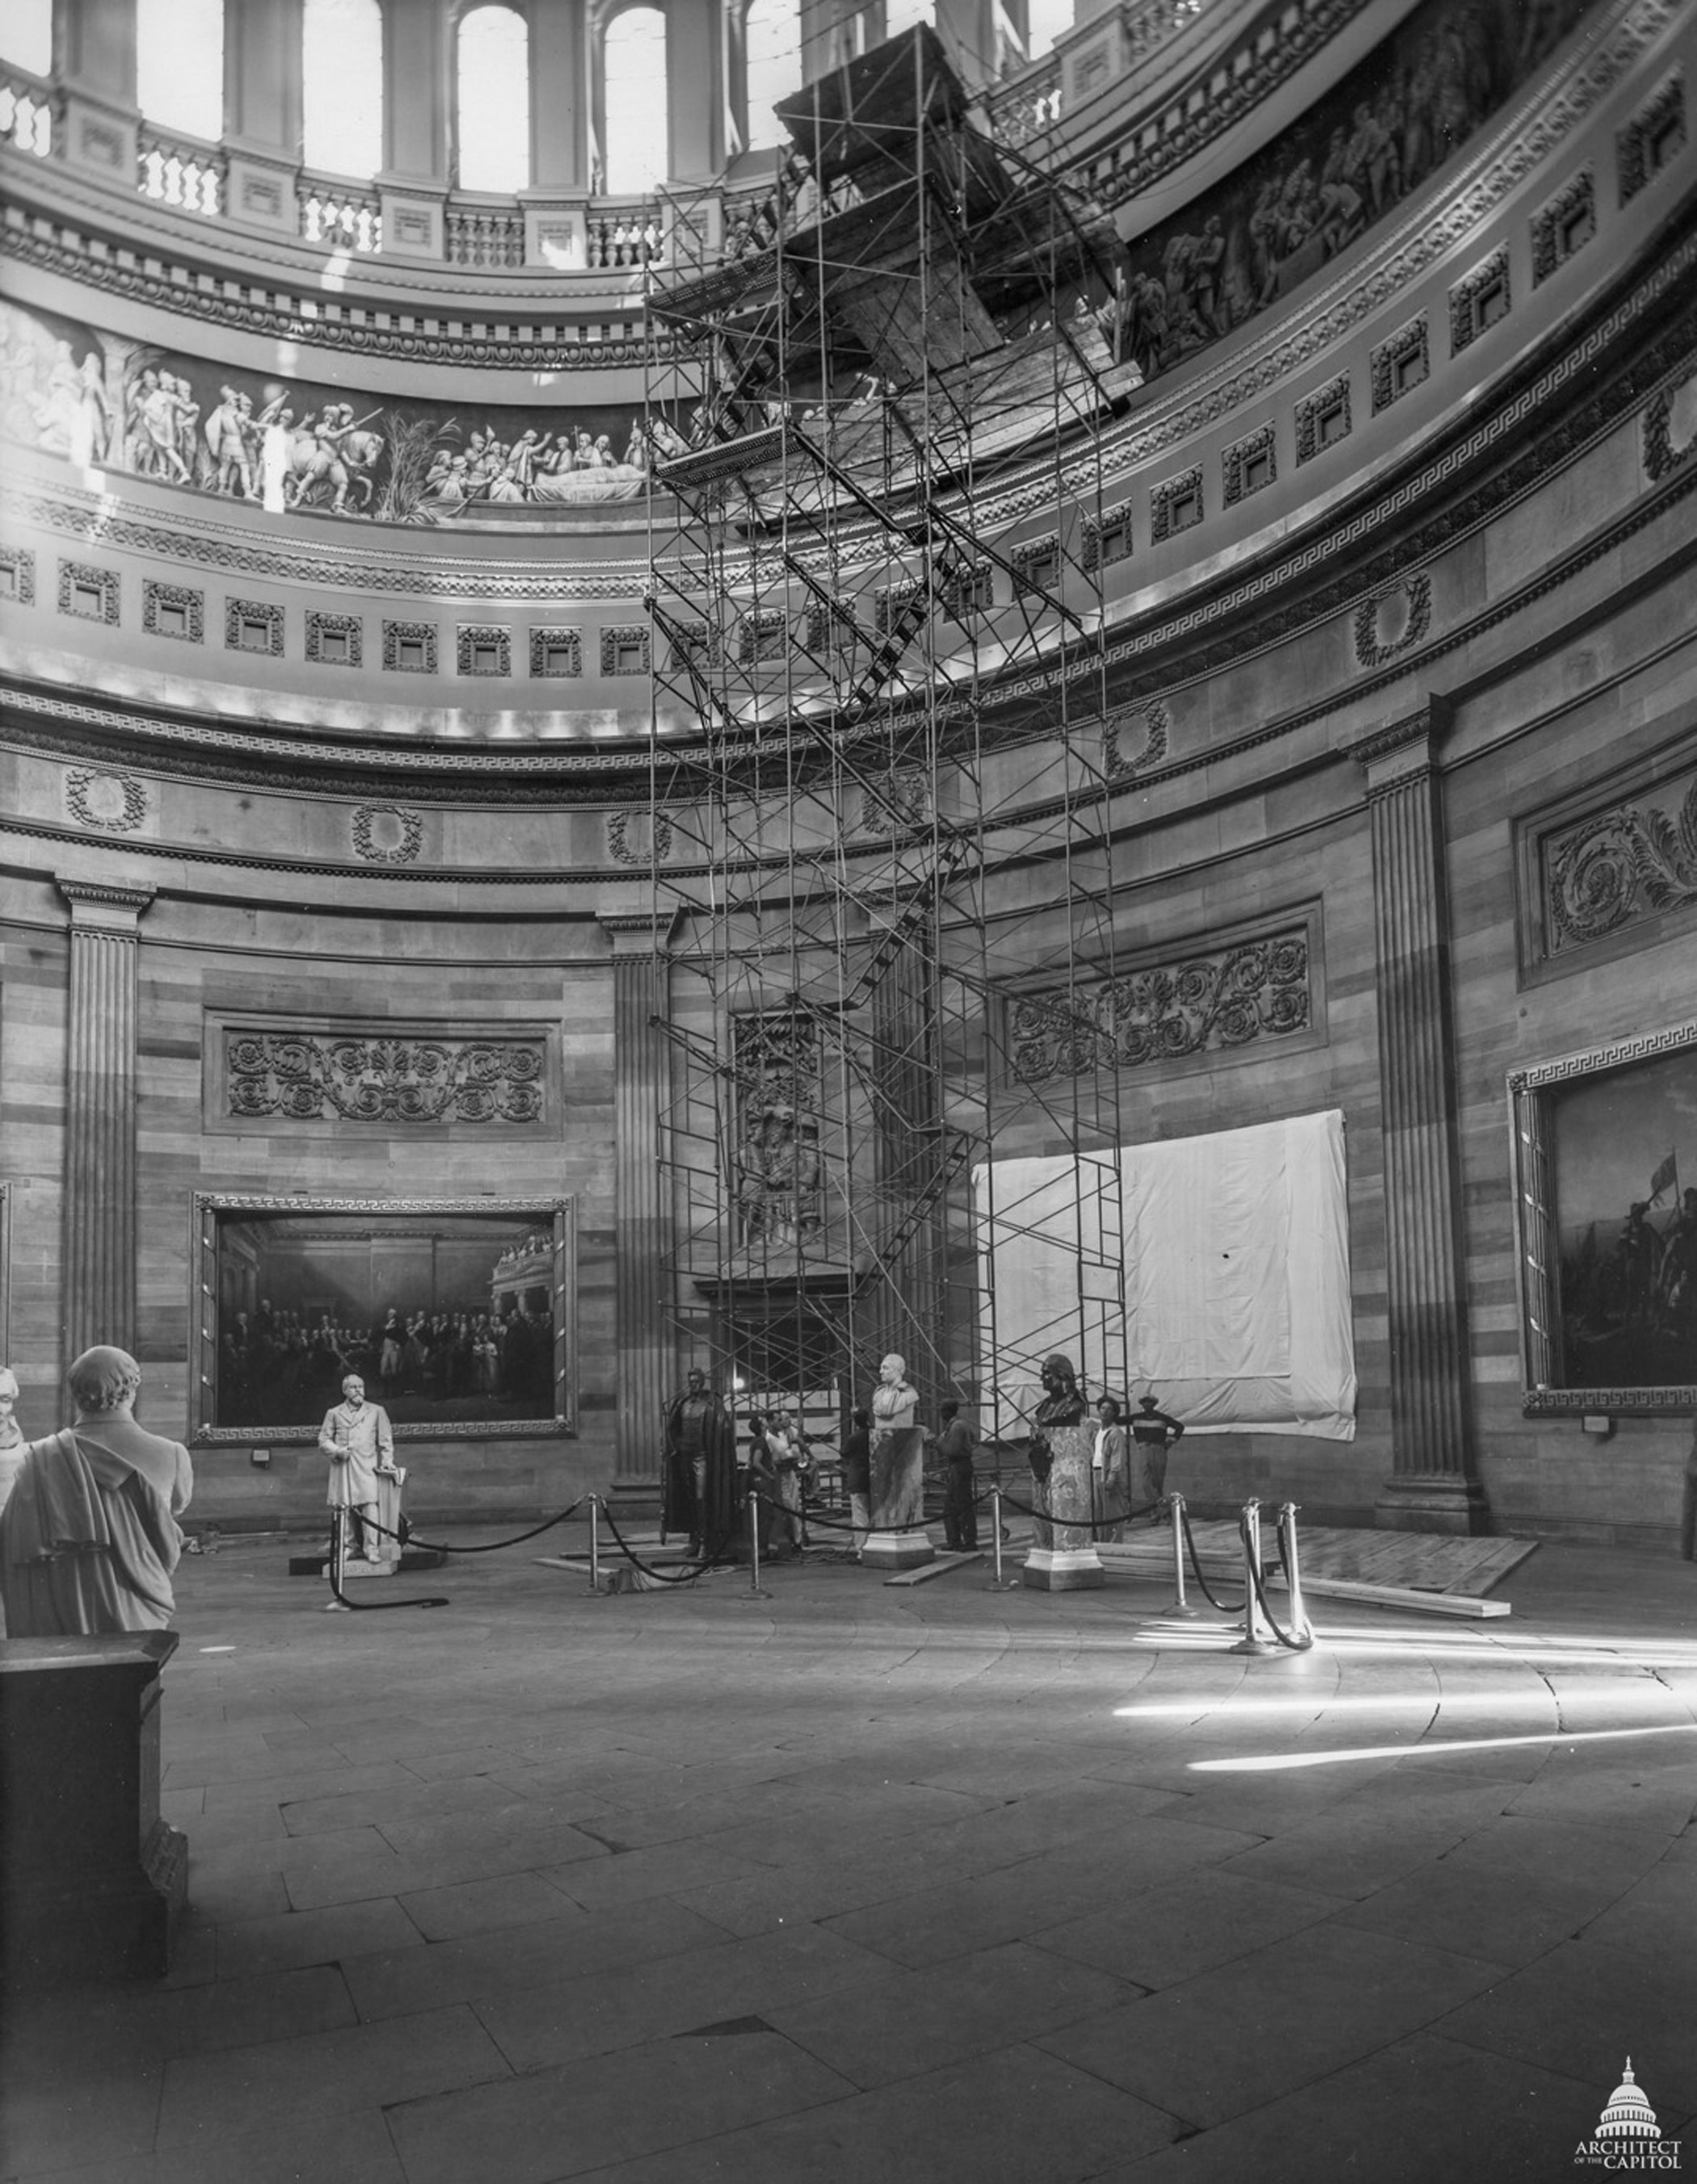 Moveable scaffolding was used to support workmen while cleaning the Frieze at the rotunda in 1953.